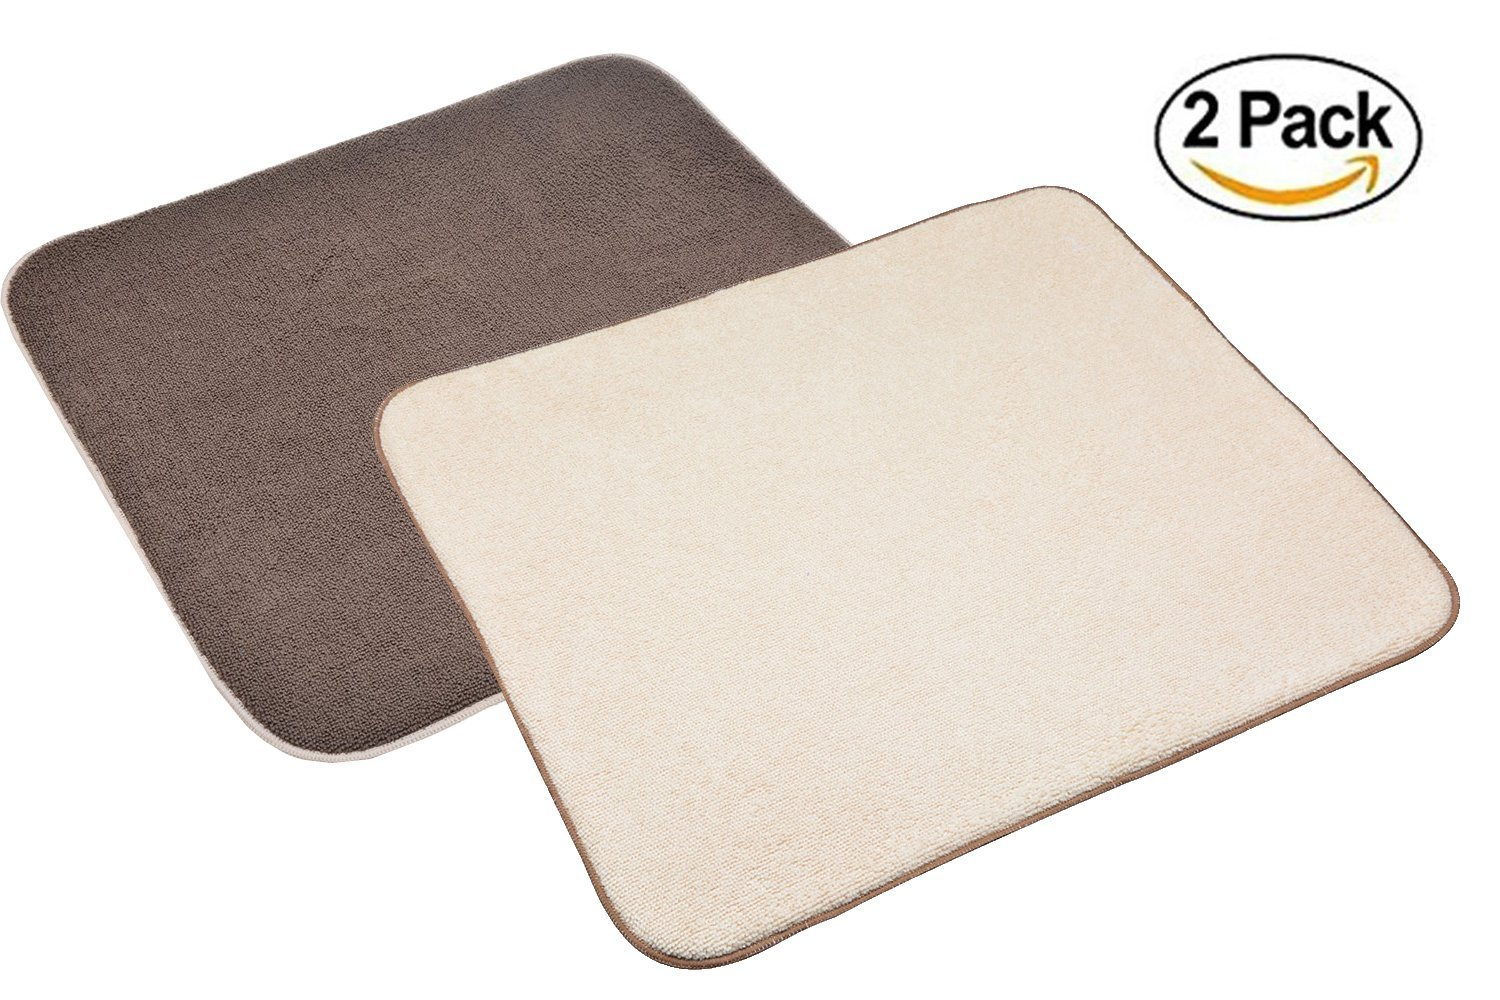 Sinland Microfiber Dish Drying Mats for Kitchen Countertop Drying Pads for Dishes Absorbent 16Inch X 18Inch 2 Pack Brown & Cream